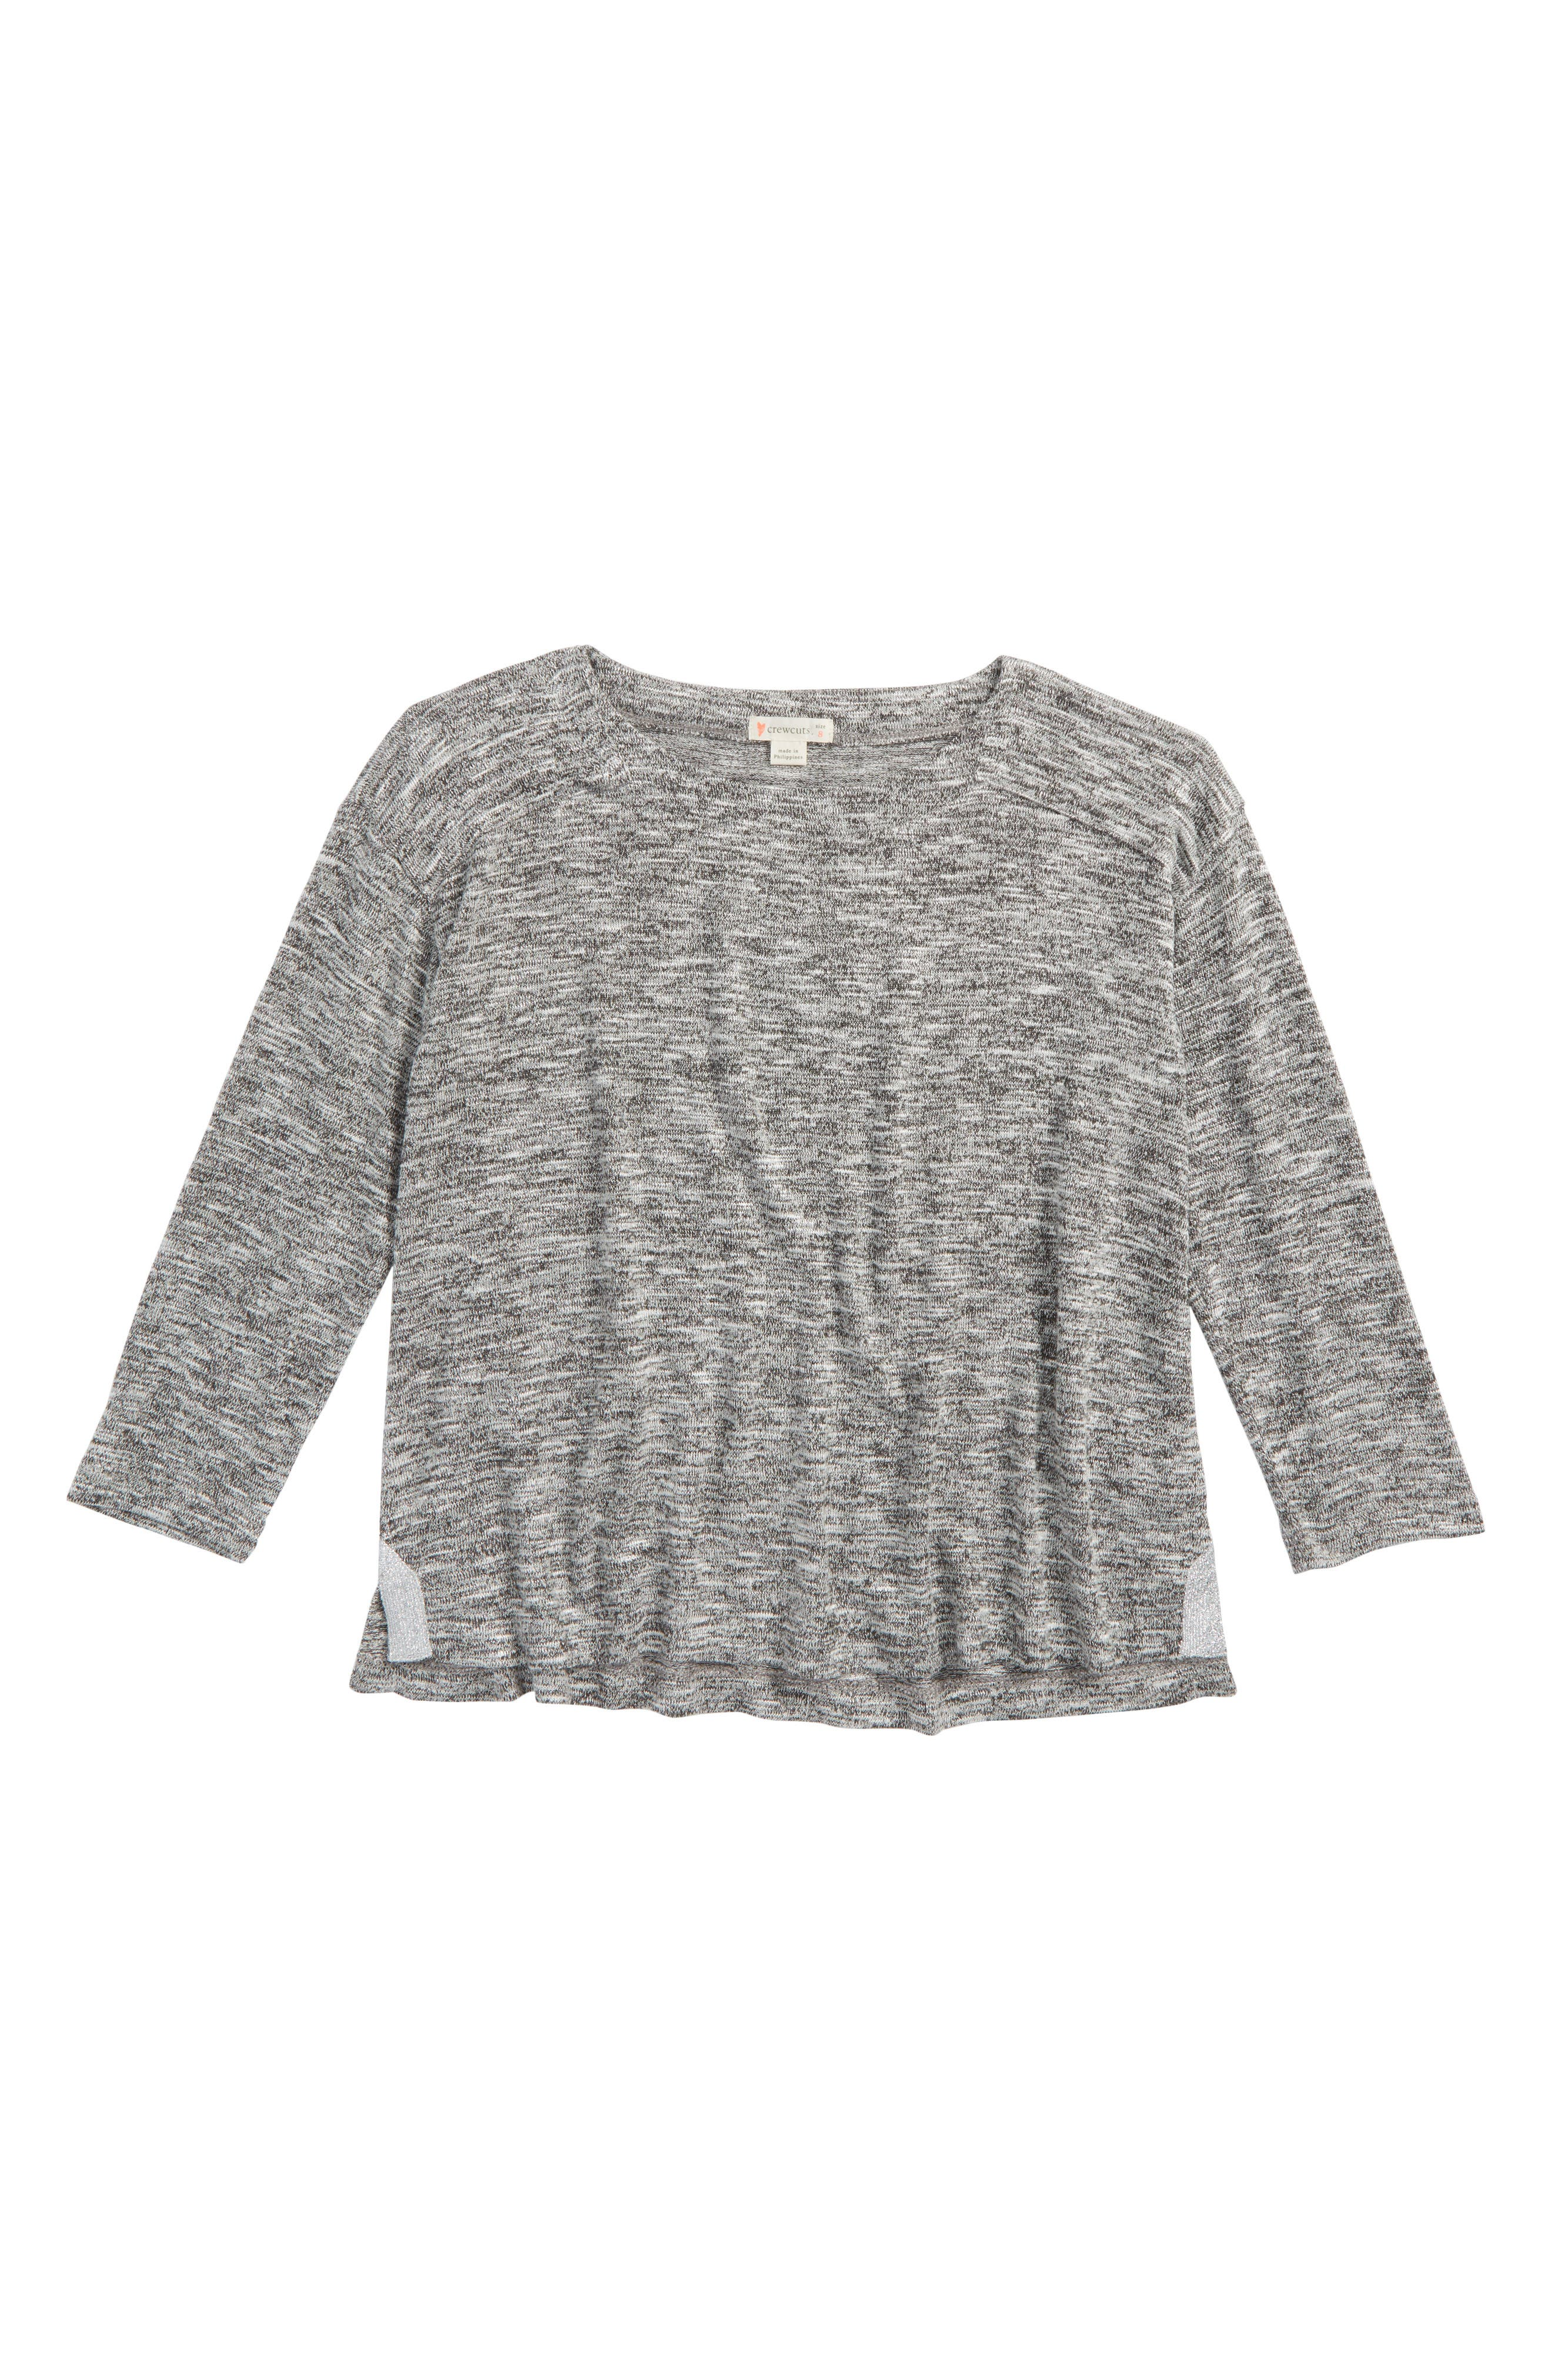 Marled Tee,                             Main thumbnail 1, color,                             Speckled Light Gray